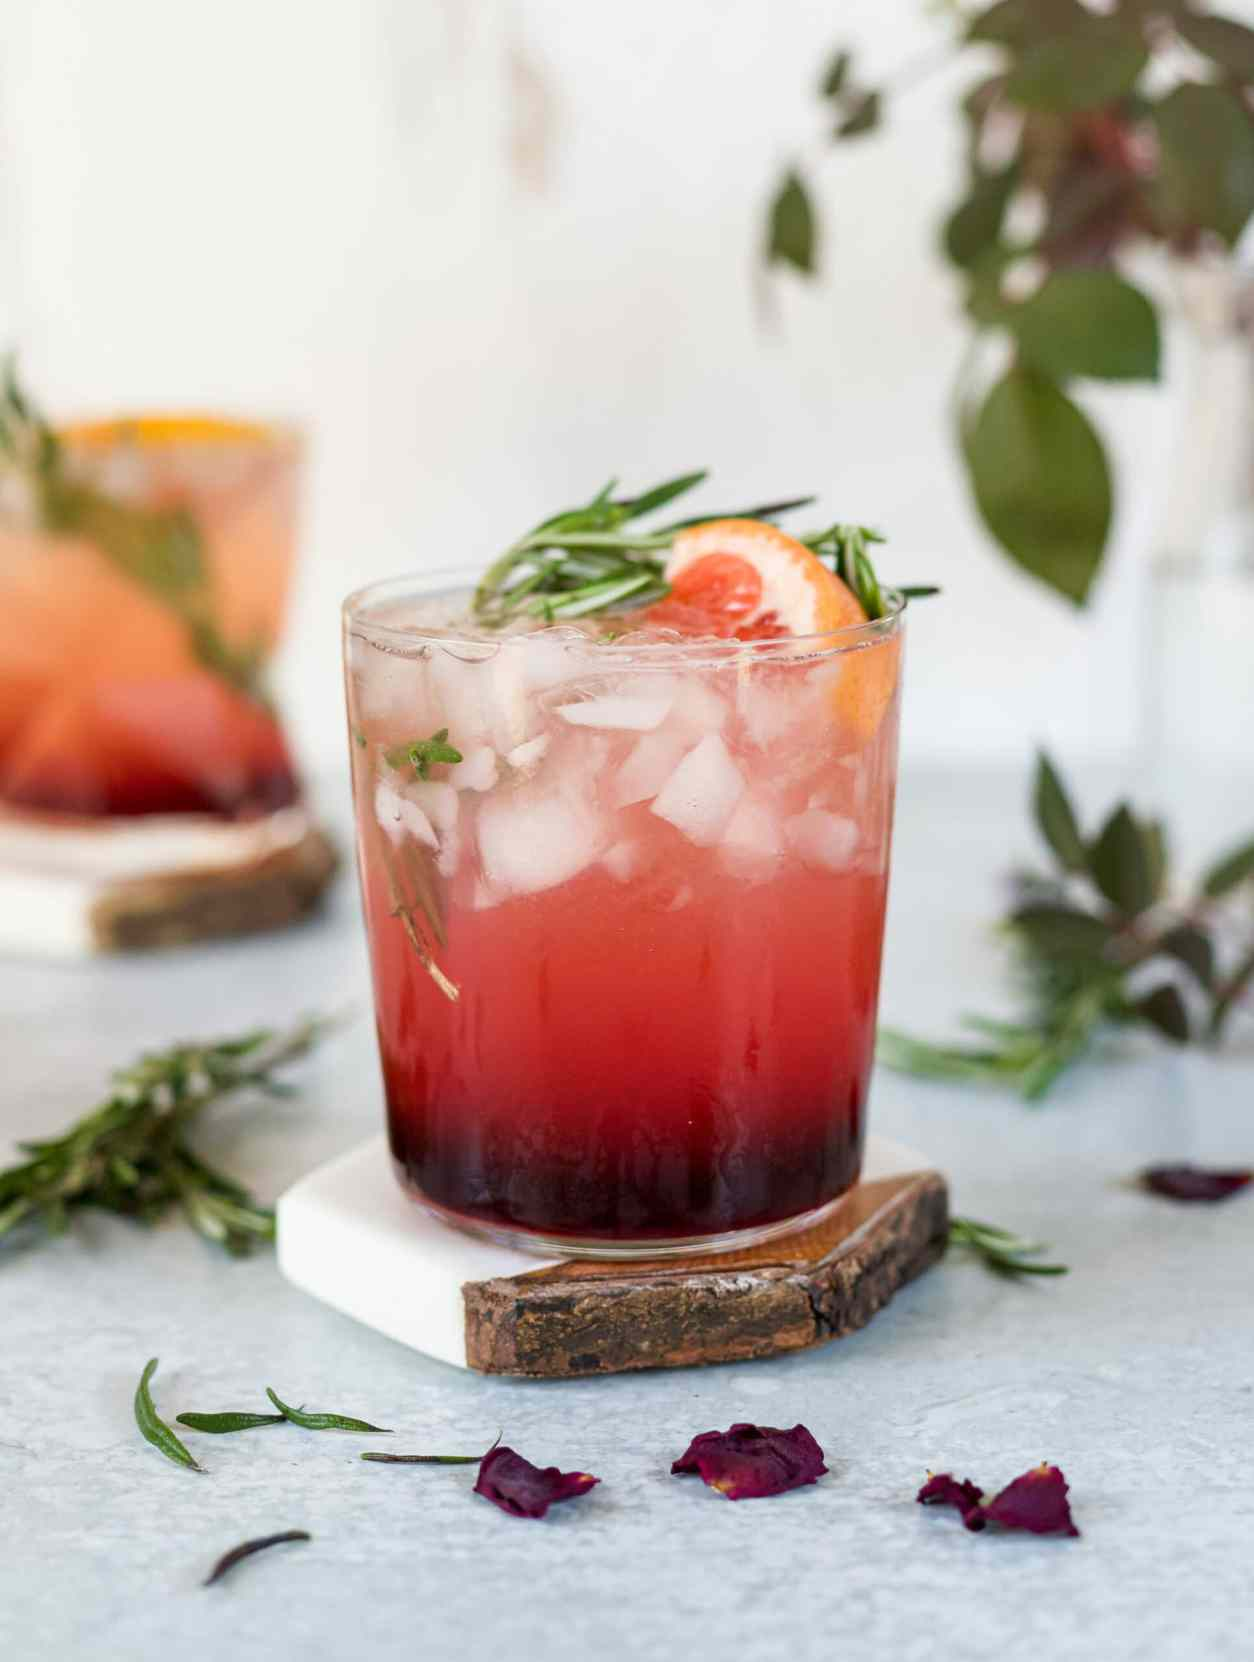 A cocktail glass filled with a pomegranate cocktail and garnished with grapefruit and rosemary.